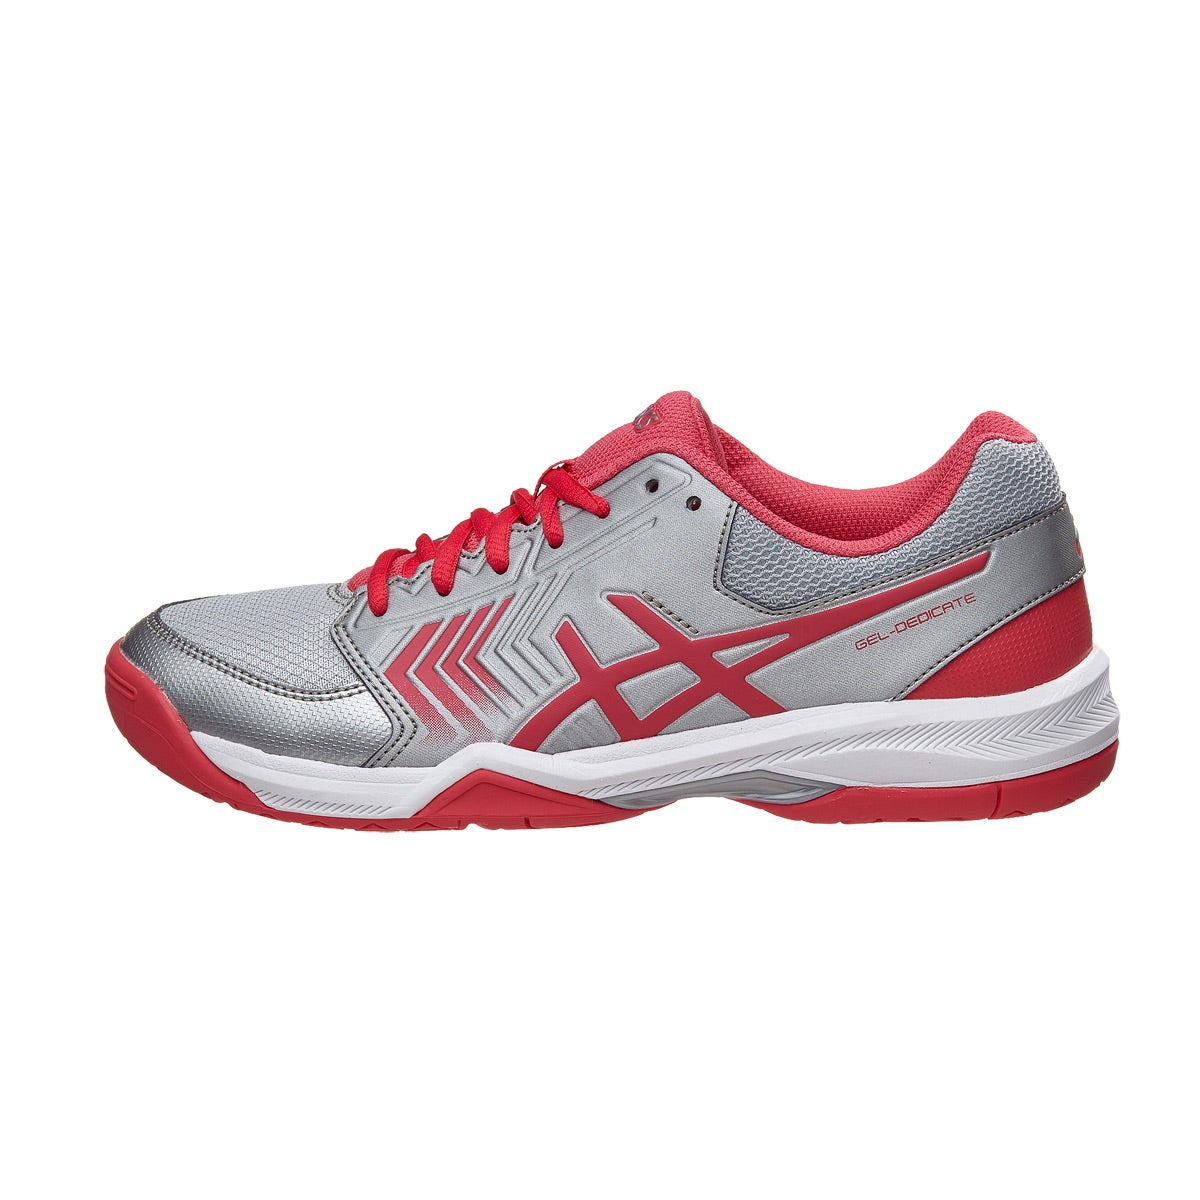 Asics Gel Dedicate 5 Silver/Pink/White Women's Shoes 360° View